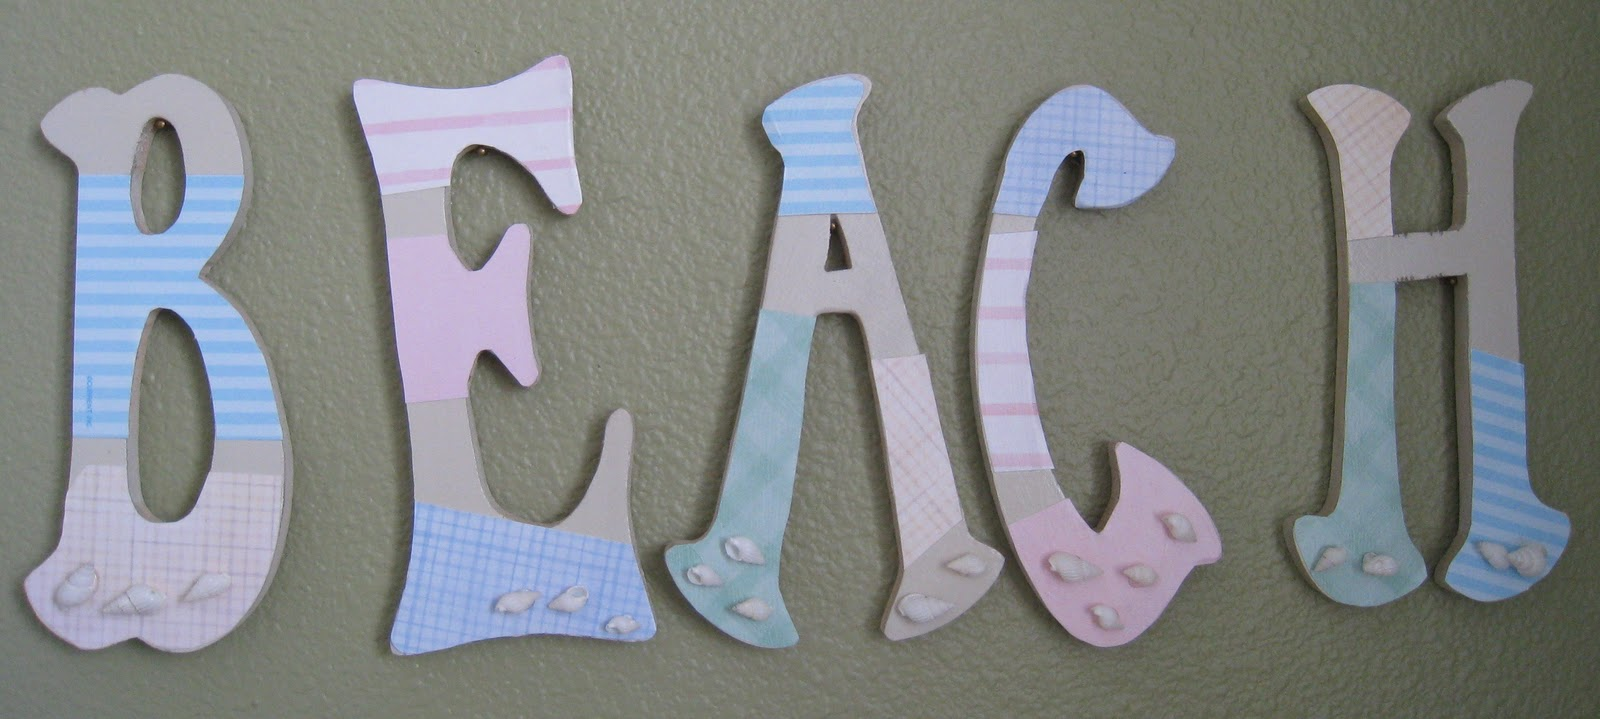 i spray painted them all a beige color then used different colored paper to cover parts of the letters i traced the parts of the letters i wanted to